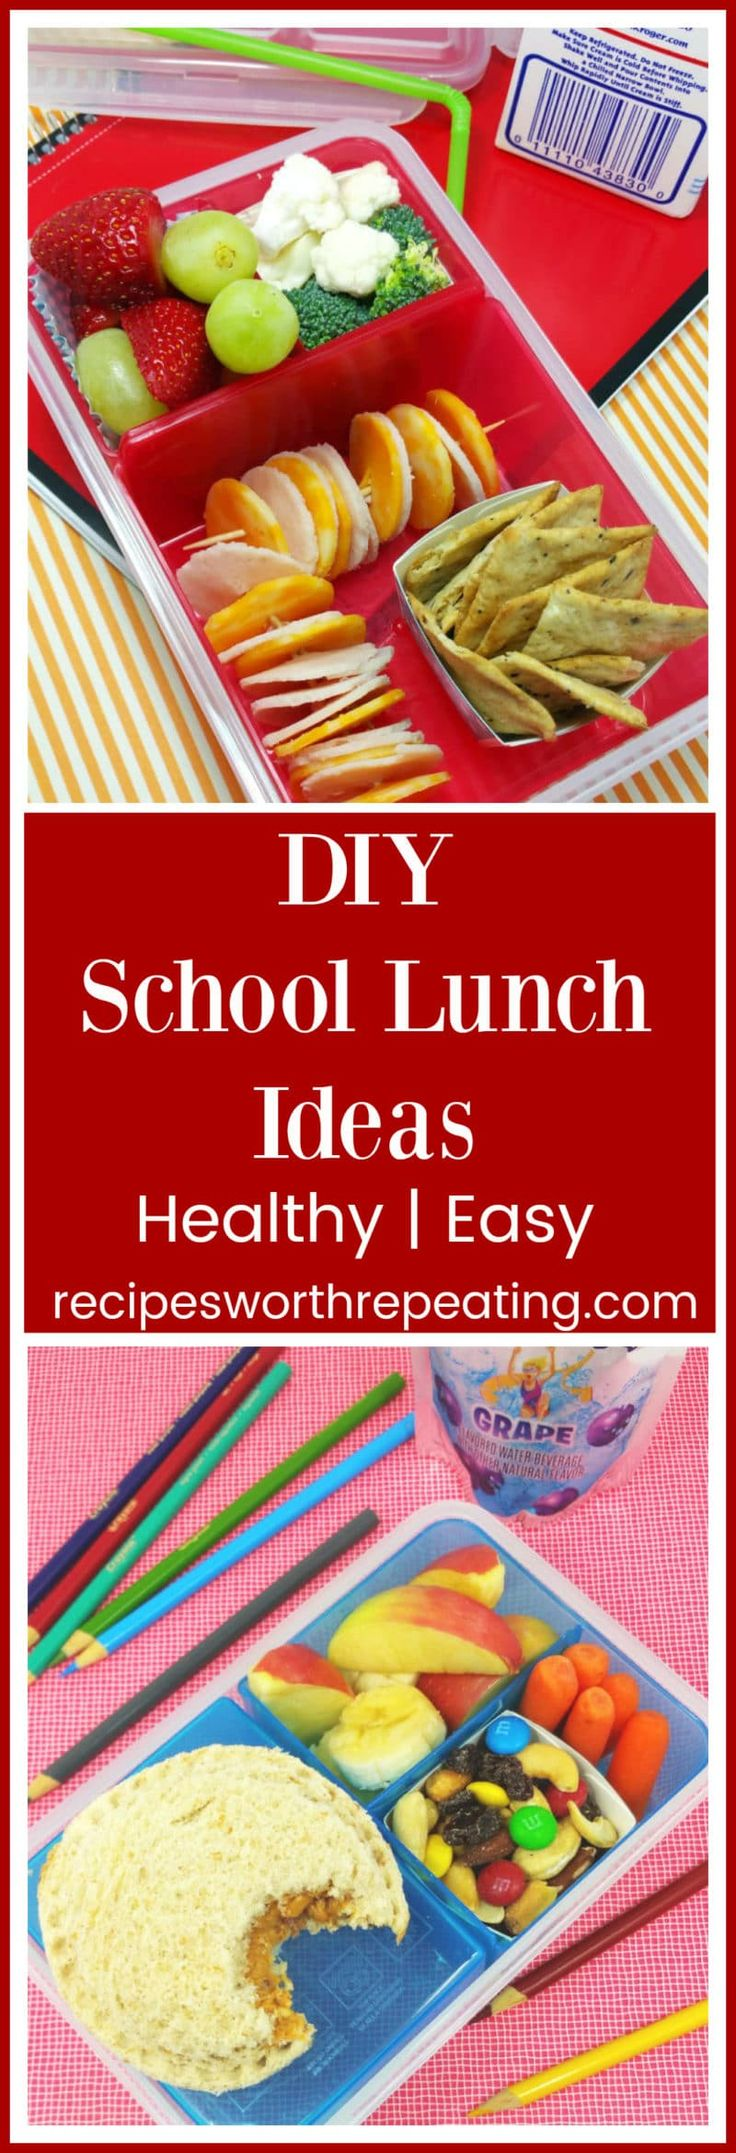 Buying school lunches can be so expensive, especially if your child's school offers an a la carte option like ours does! My kiddos were not on board to taking a packed lunch from home, but after we worked together and made their lunches fun and what they wanted to eat, they were on board! And it saved me a TON of money! I've got 3 healthy, fun and delish DIY School Lunches that your kiddos are guaranteed to love! #DIY #schoollunch #lunch #kidslunch #lunchideas | recipesworthrepeating.com